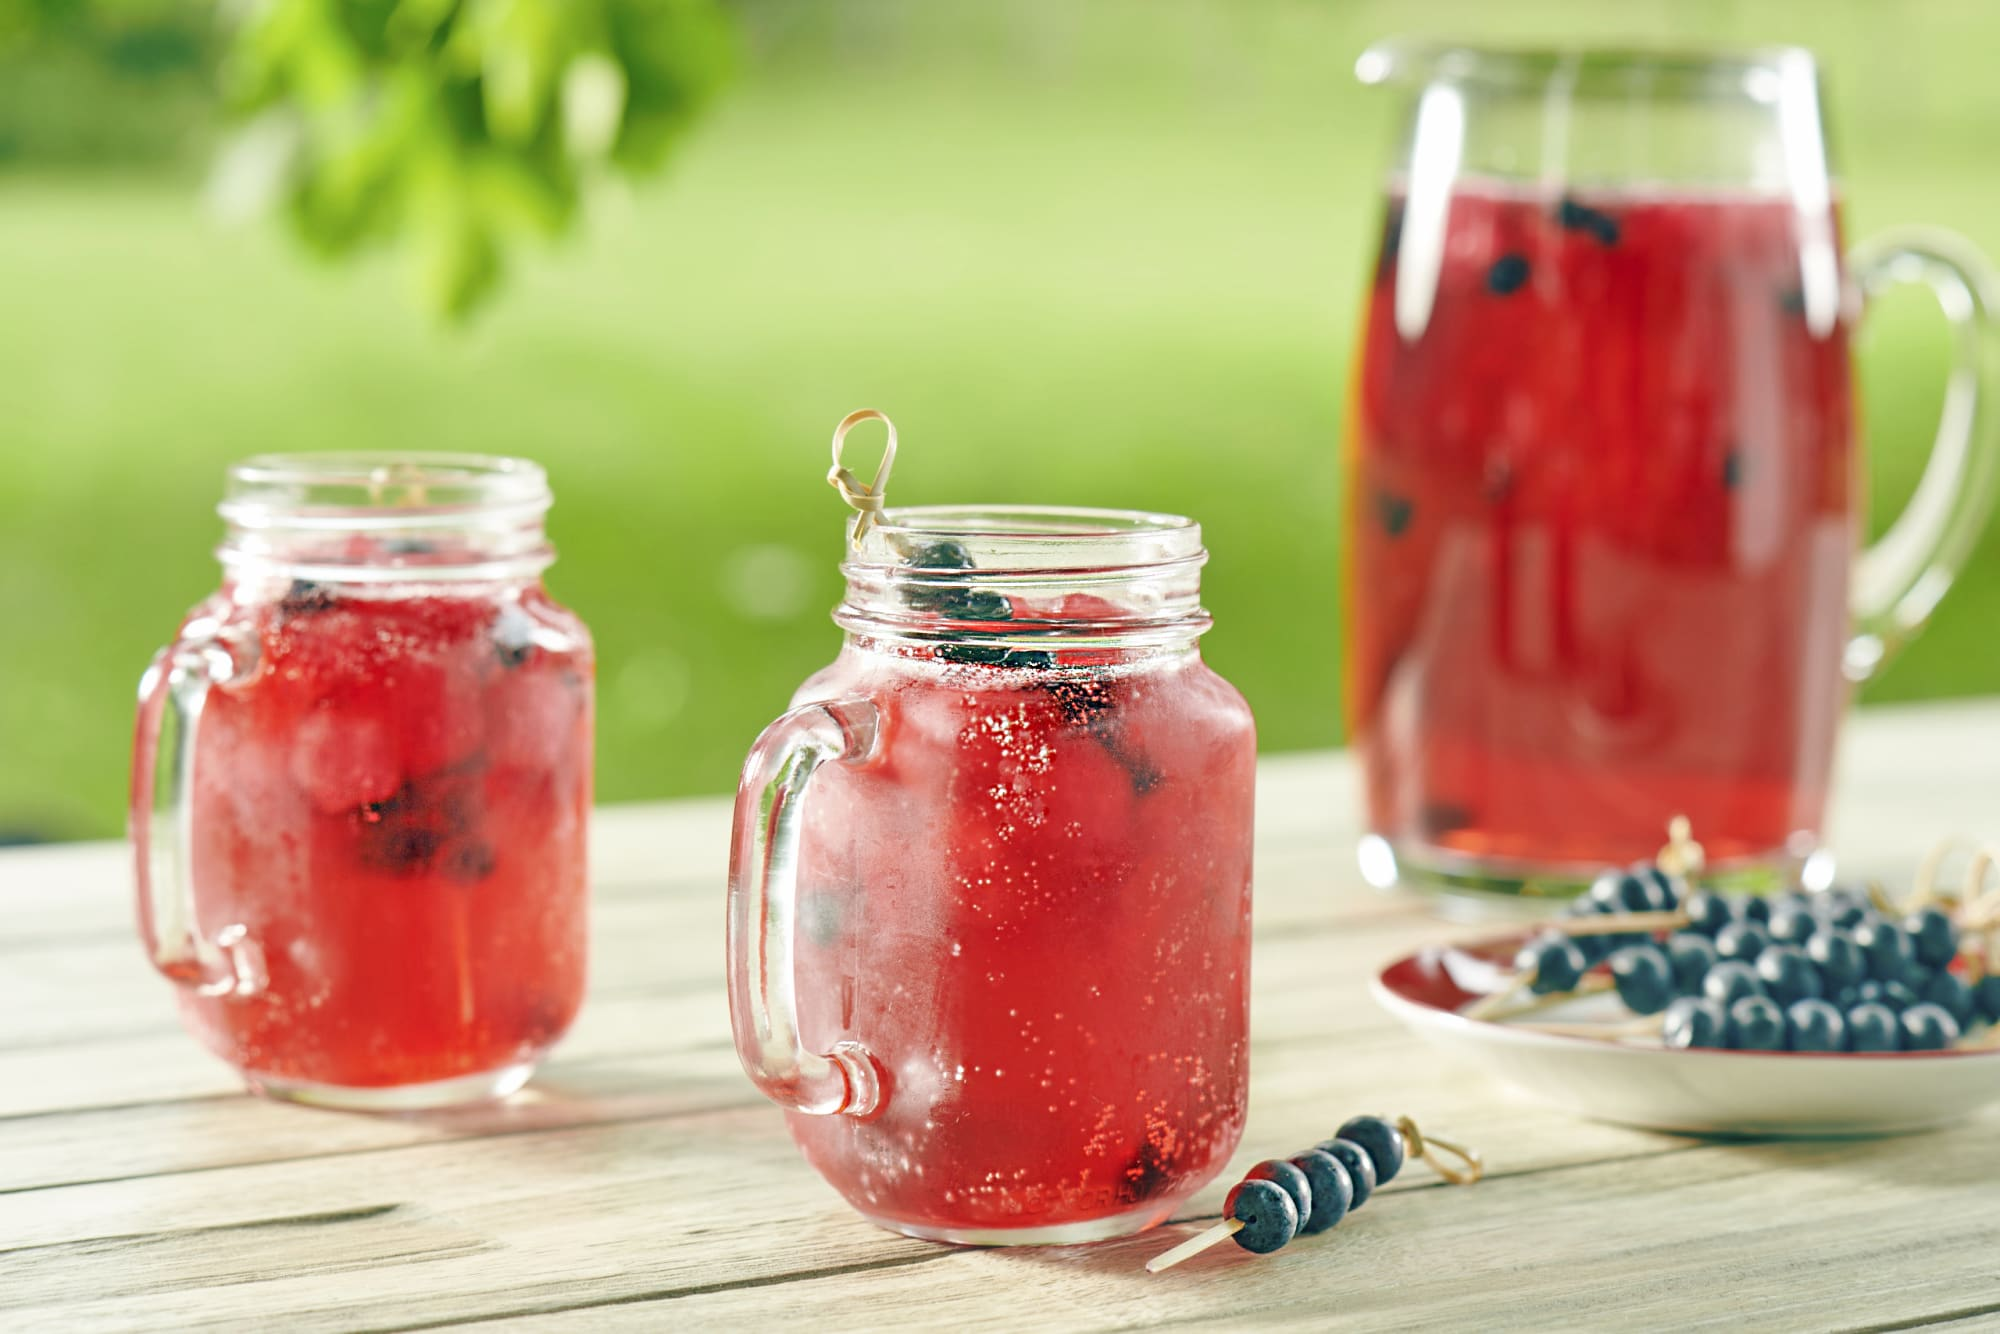 July 4th Celebrate With Fabulous Fruity Cocktails